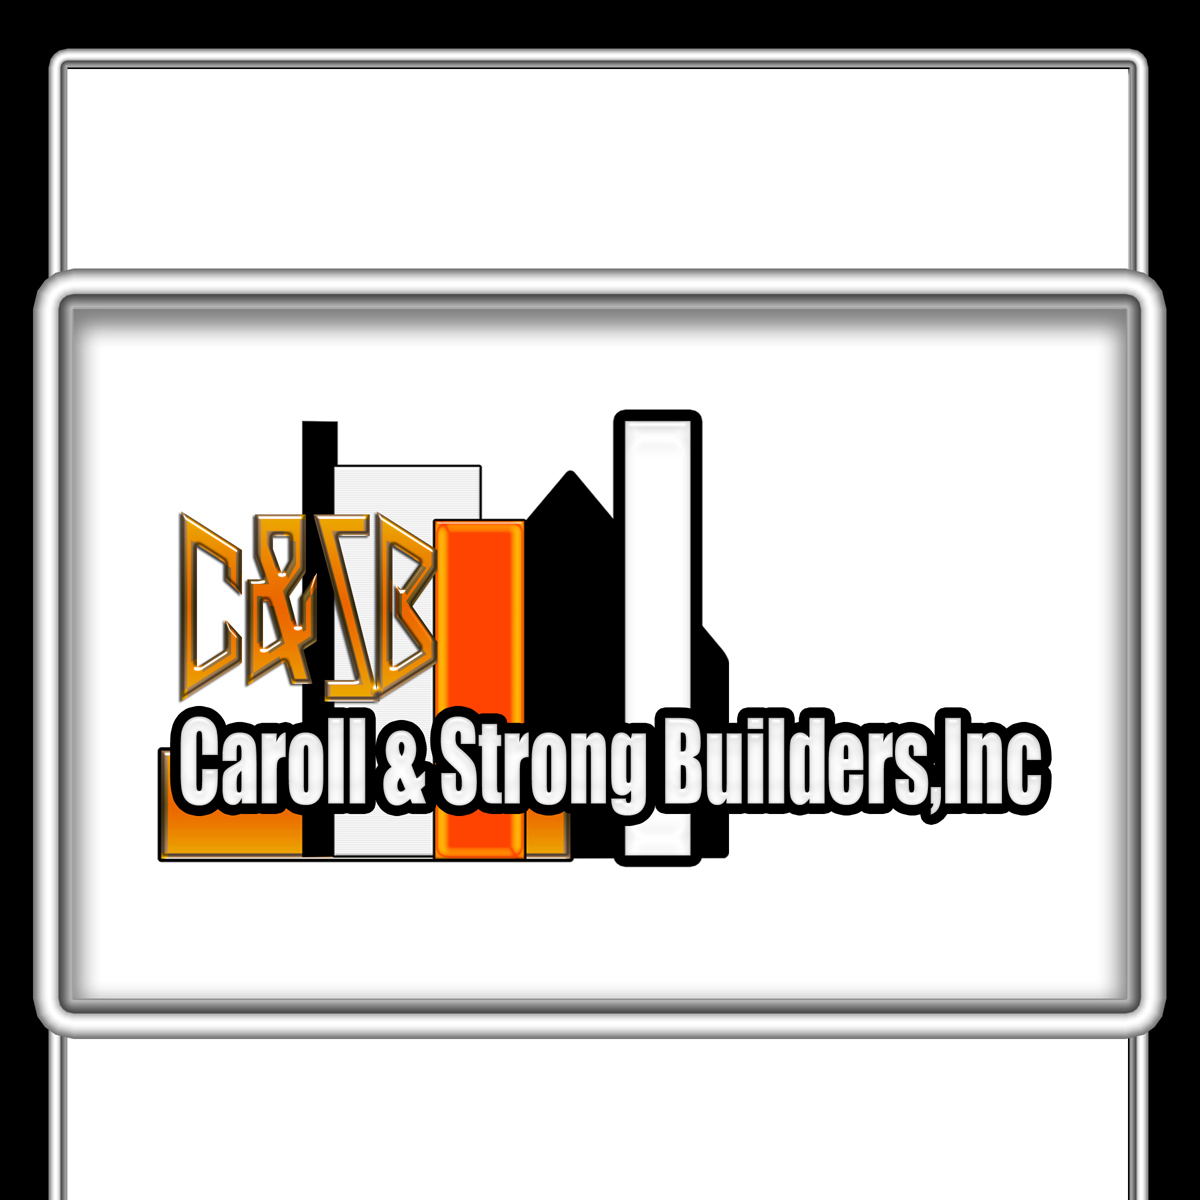 Logo Design by MITUCA ANDREI - Entry No. 13 in the Logo Design Contest New Logo Design for Carroll & Strong Builders, Inc..